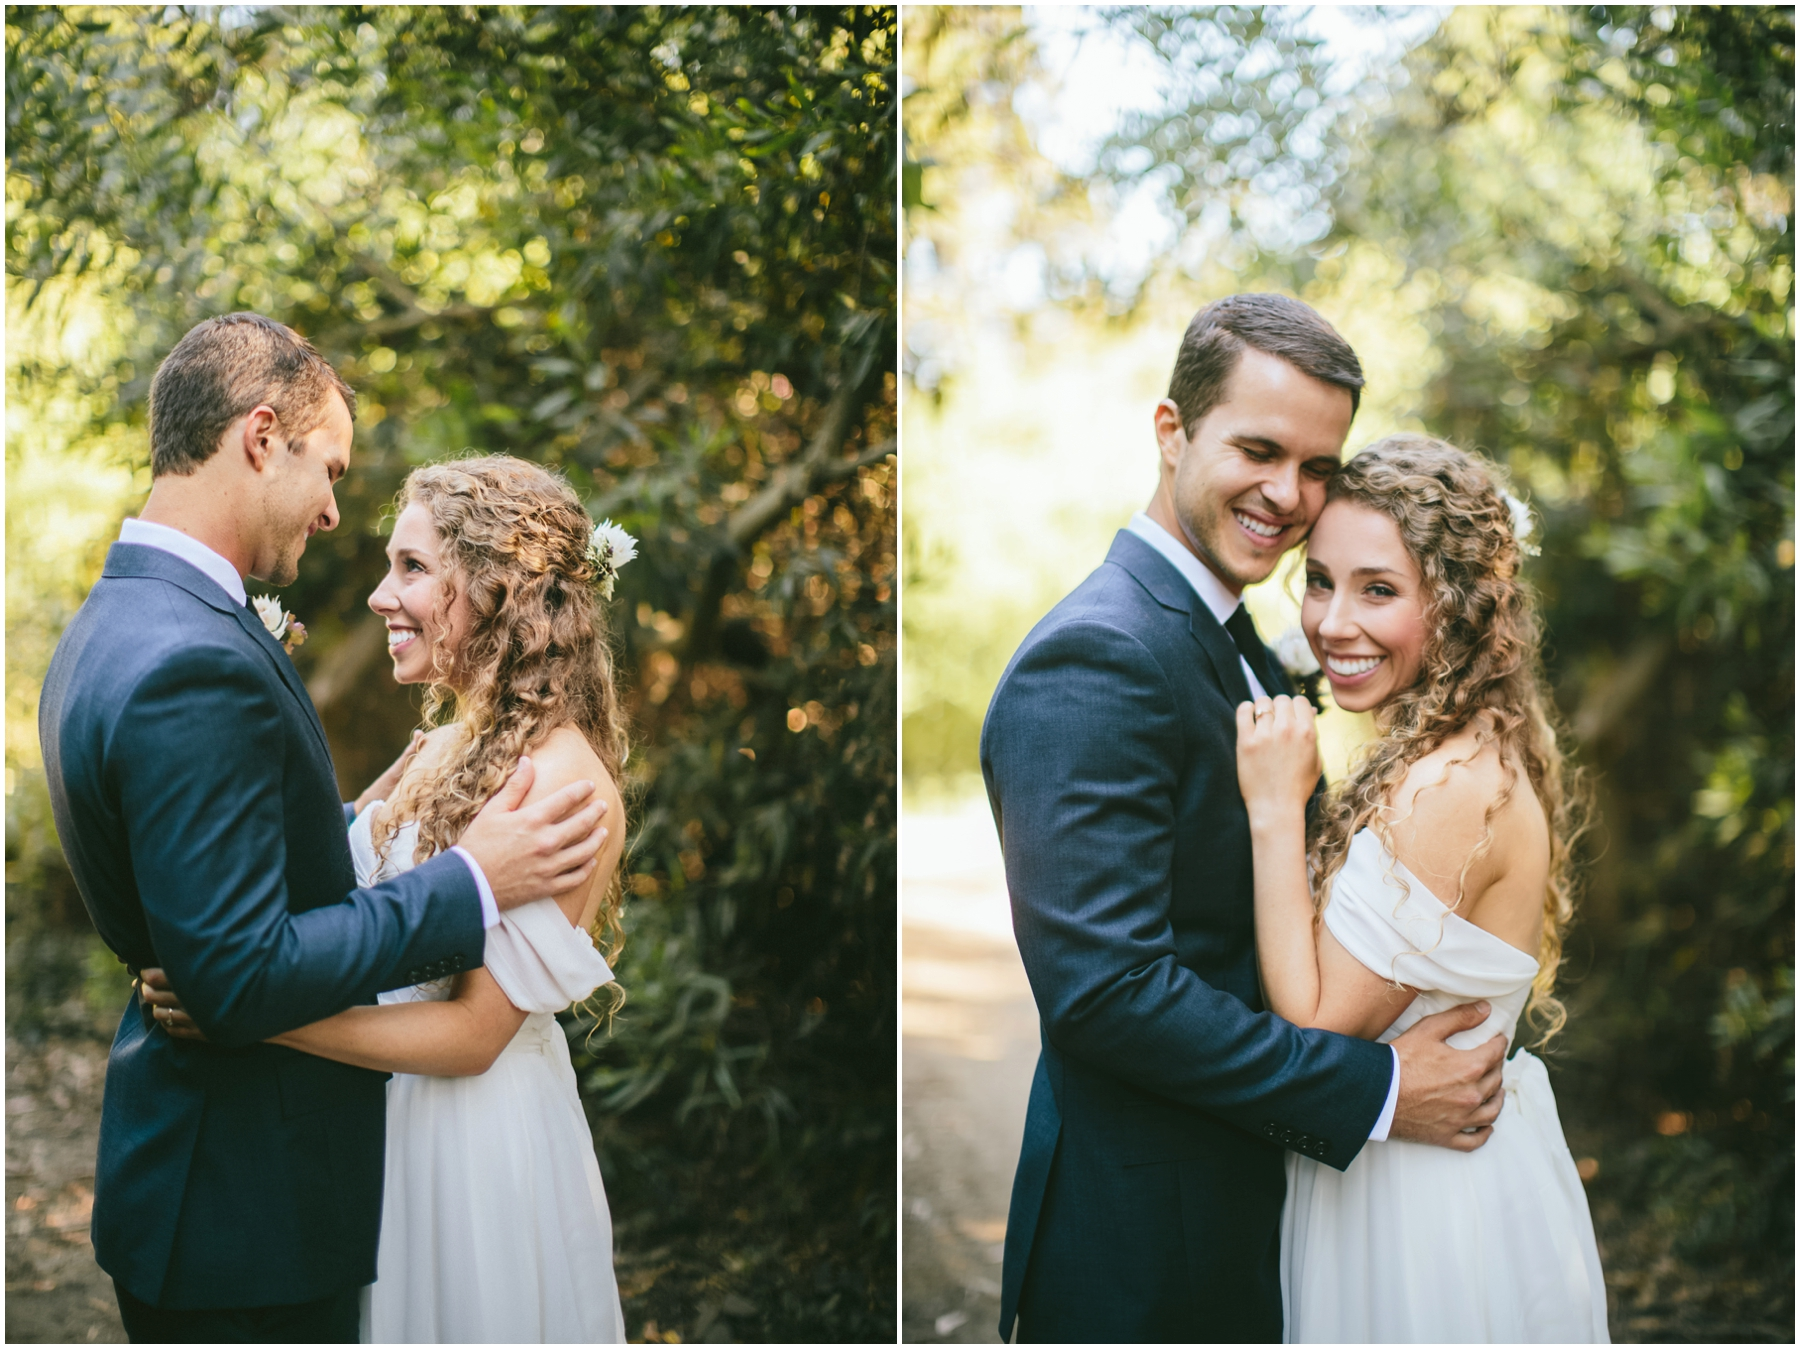 Emily+Paul-WEDDING_KellyBoitanoPhotography_0035